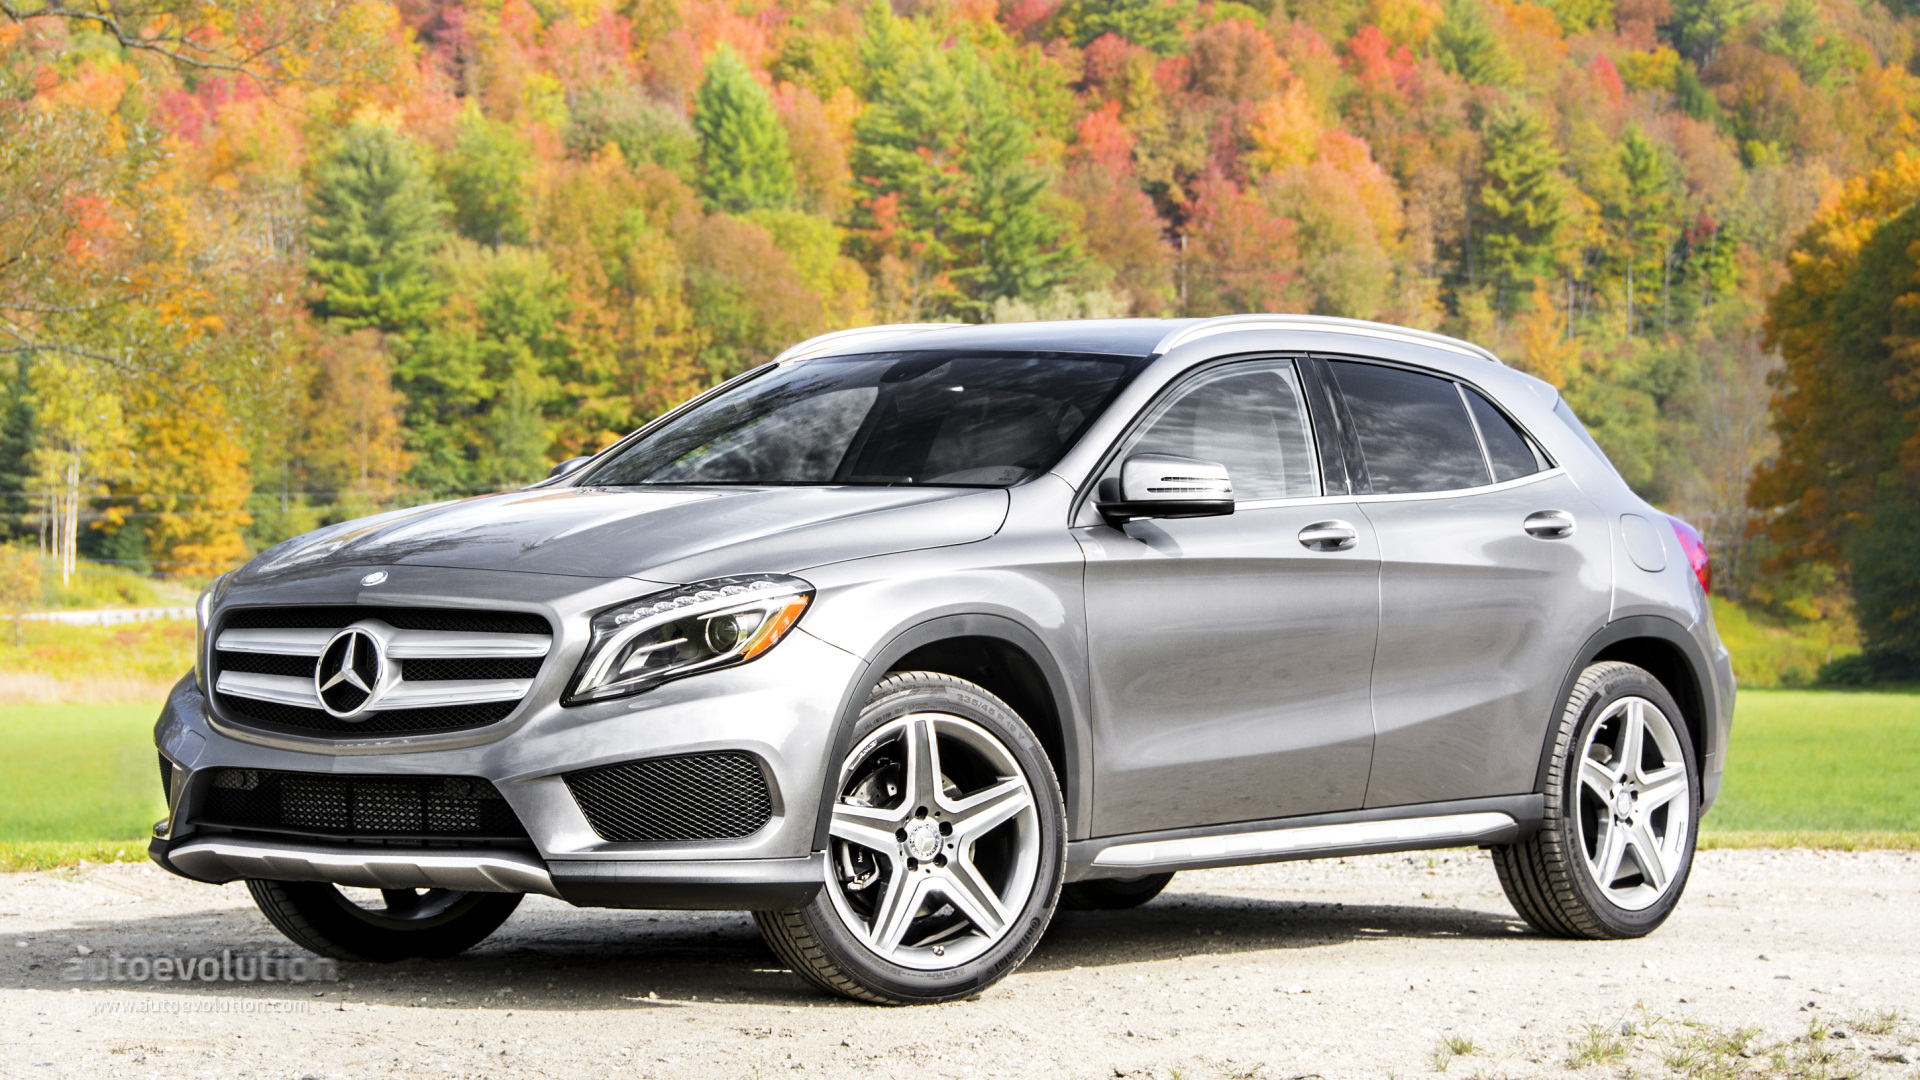 2015 mercedes benz gla250 4matic gla45 amg review for 2017 mercedes benz gla250 4matic review